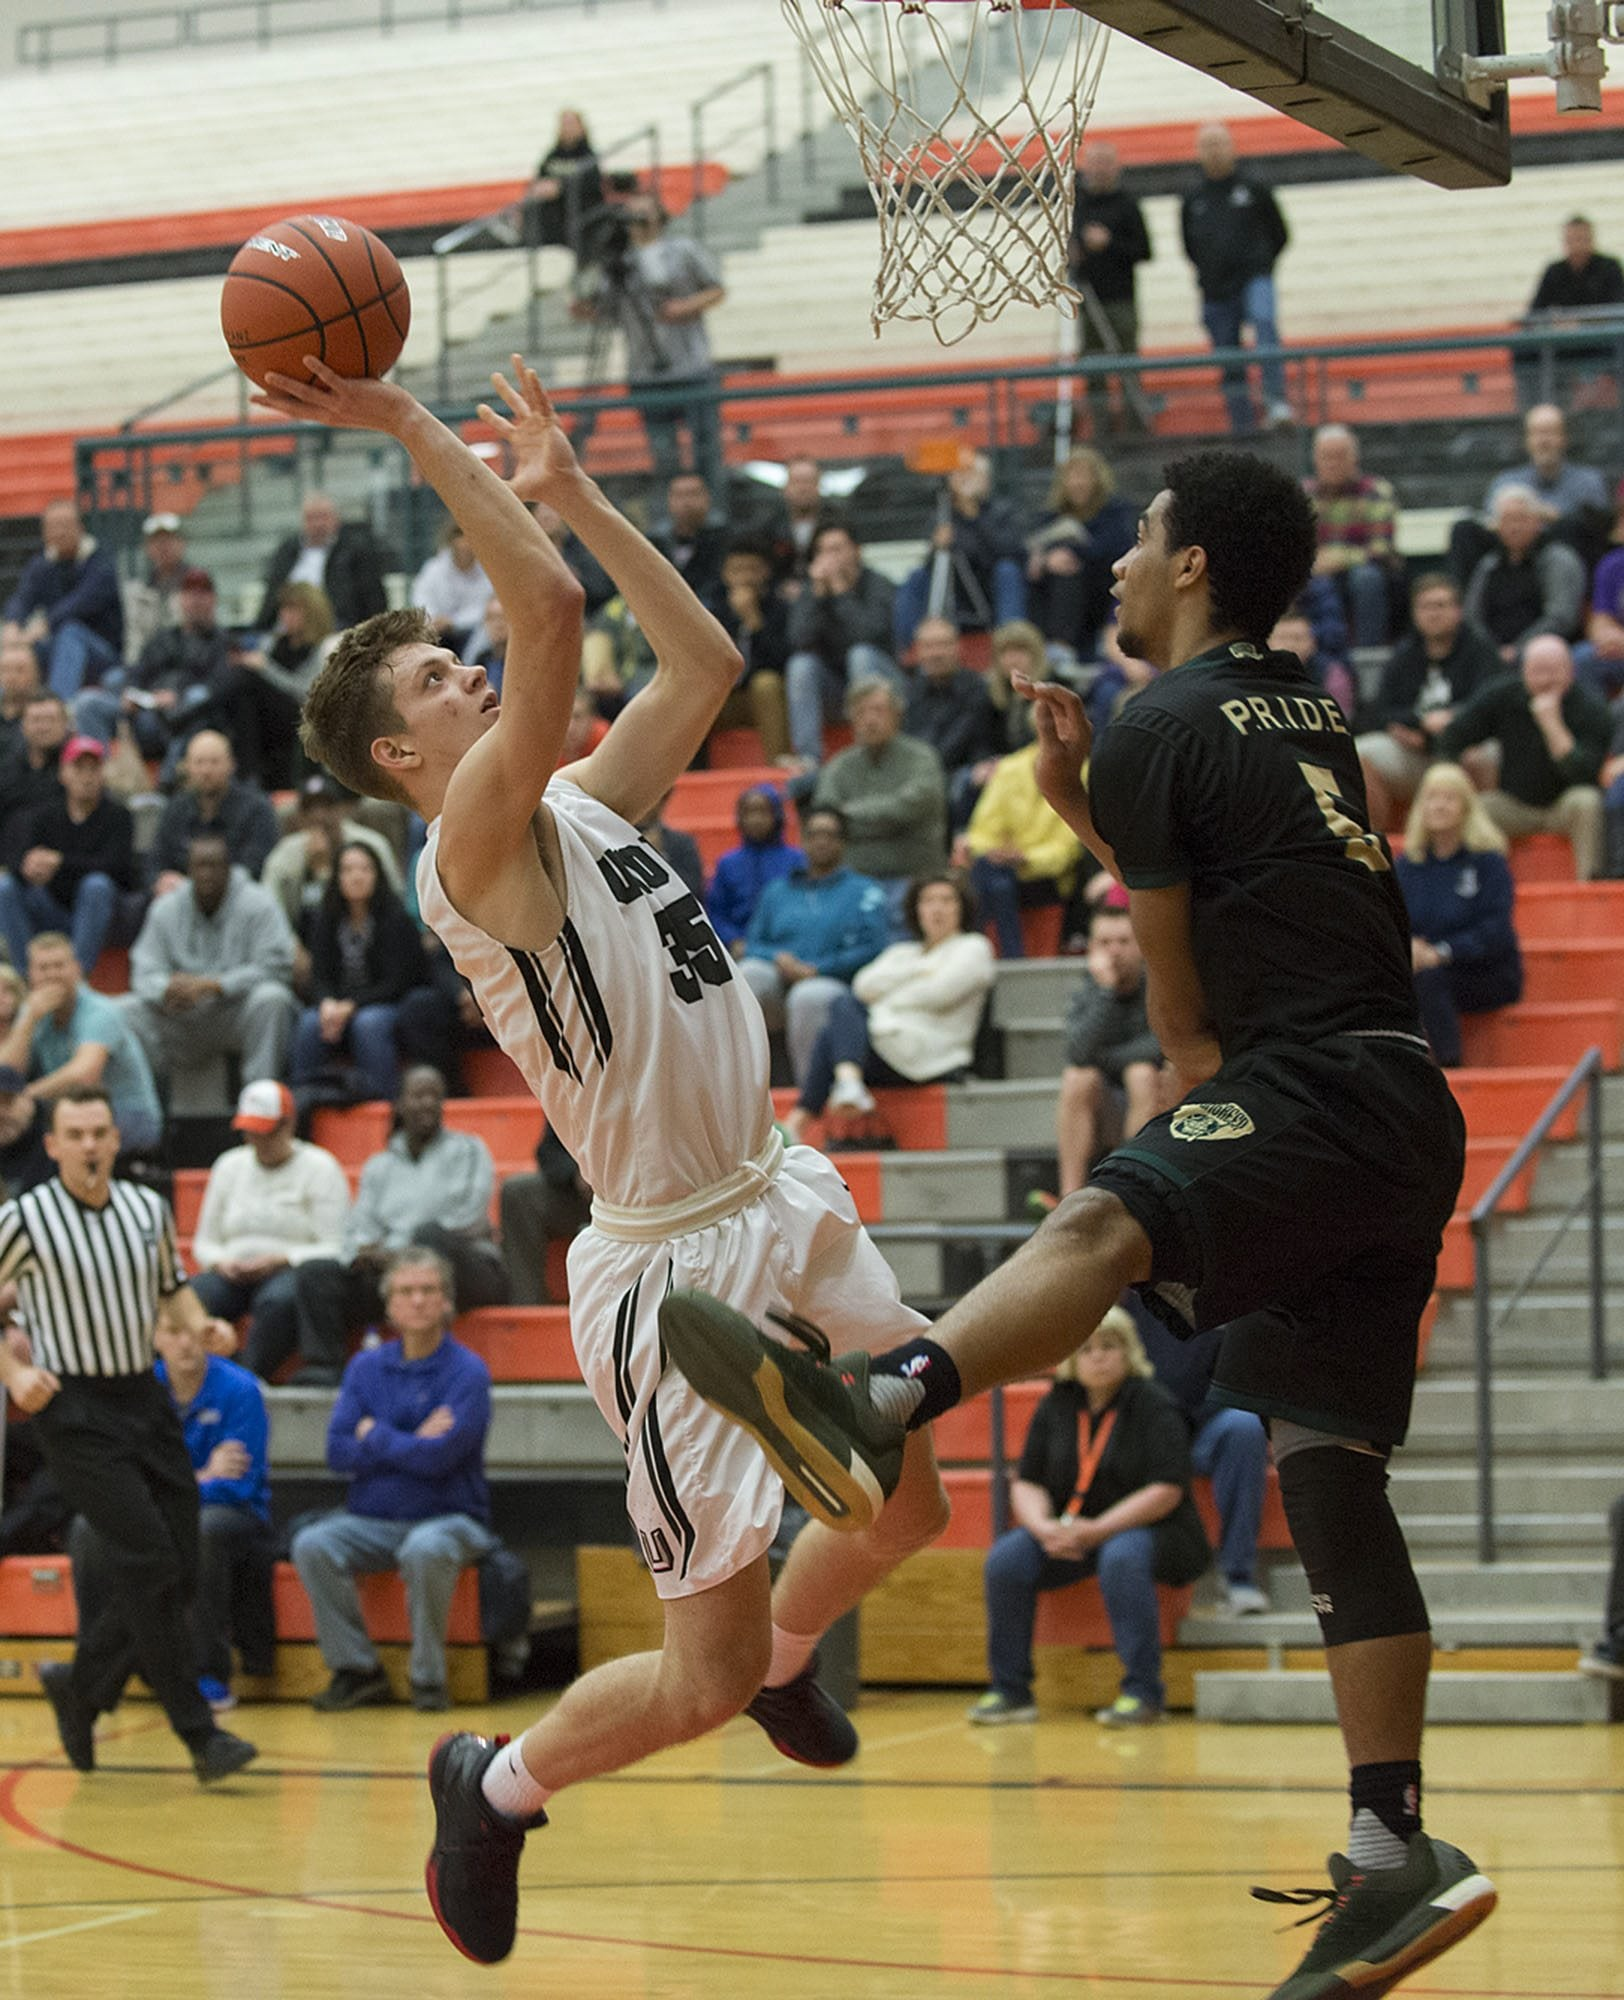 Union's Denis Kirichenko (35) looks to the hoop against Evergreen's Greg Washington (5) in the second quarter Tuesday evening, Feb. 16, 2016 at Battle Ground High School.